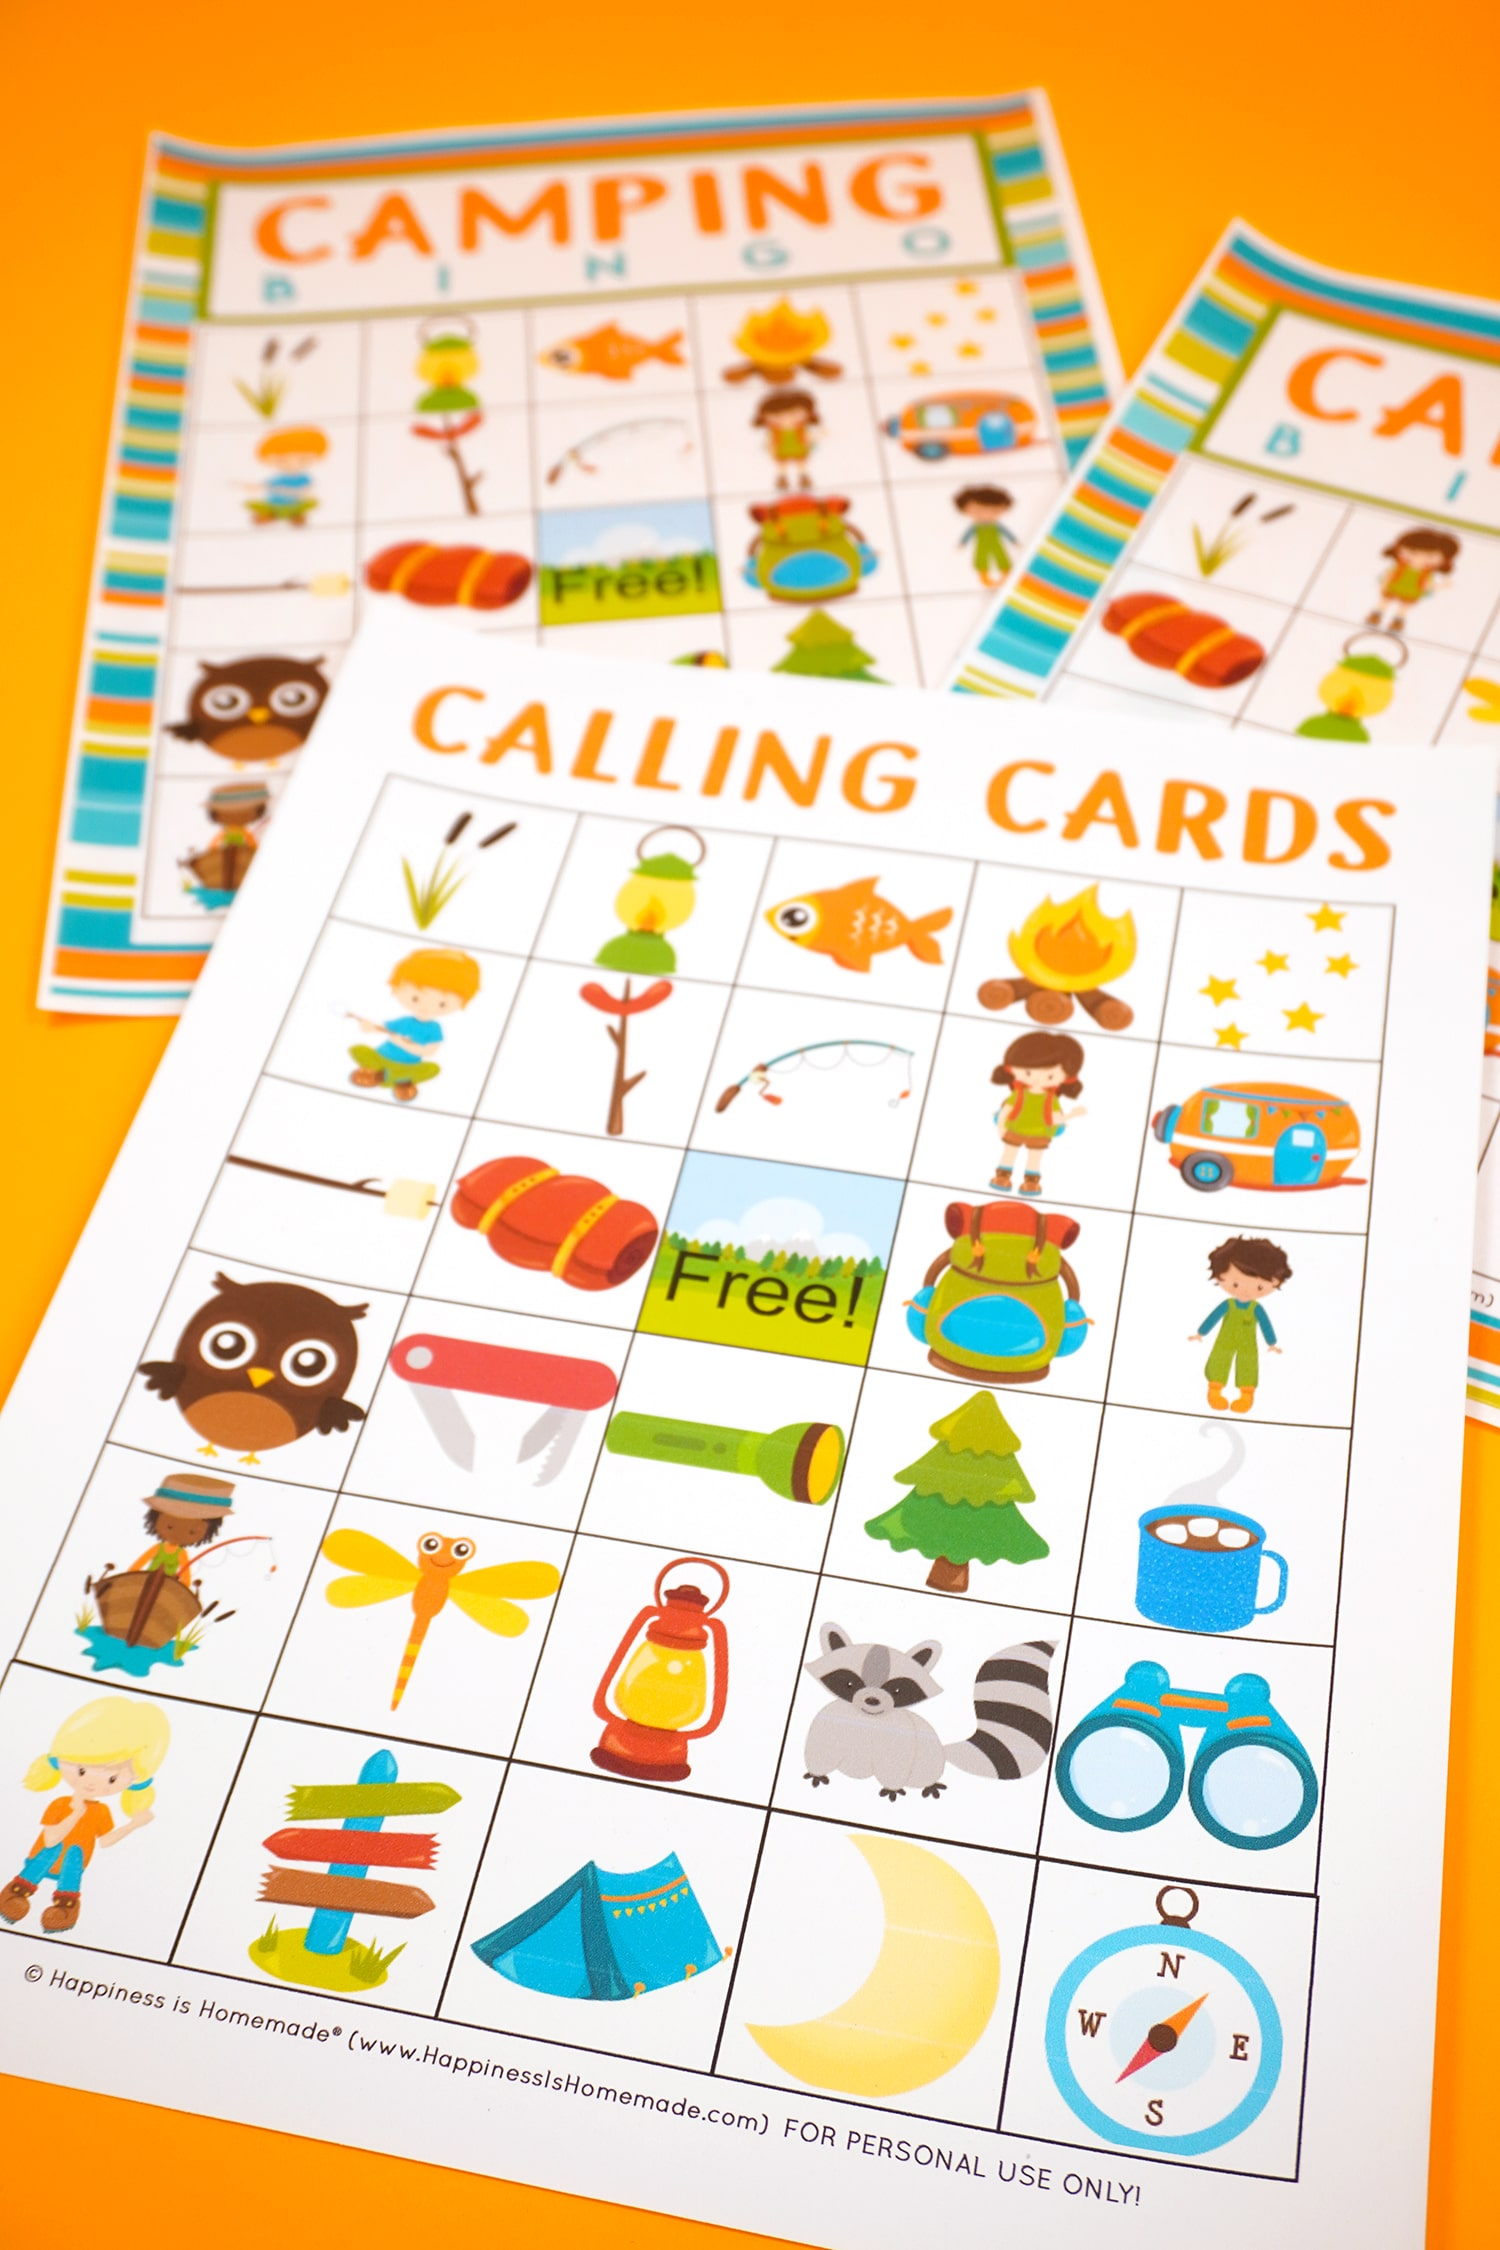 Two Camping Bingo Printable game cards on a n orange background with calling cards